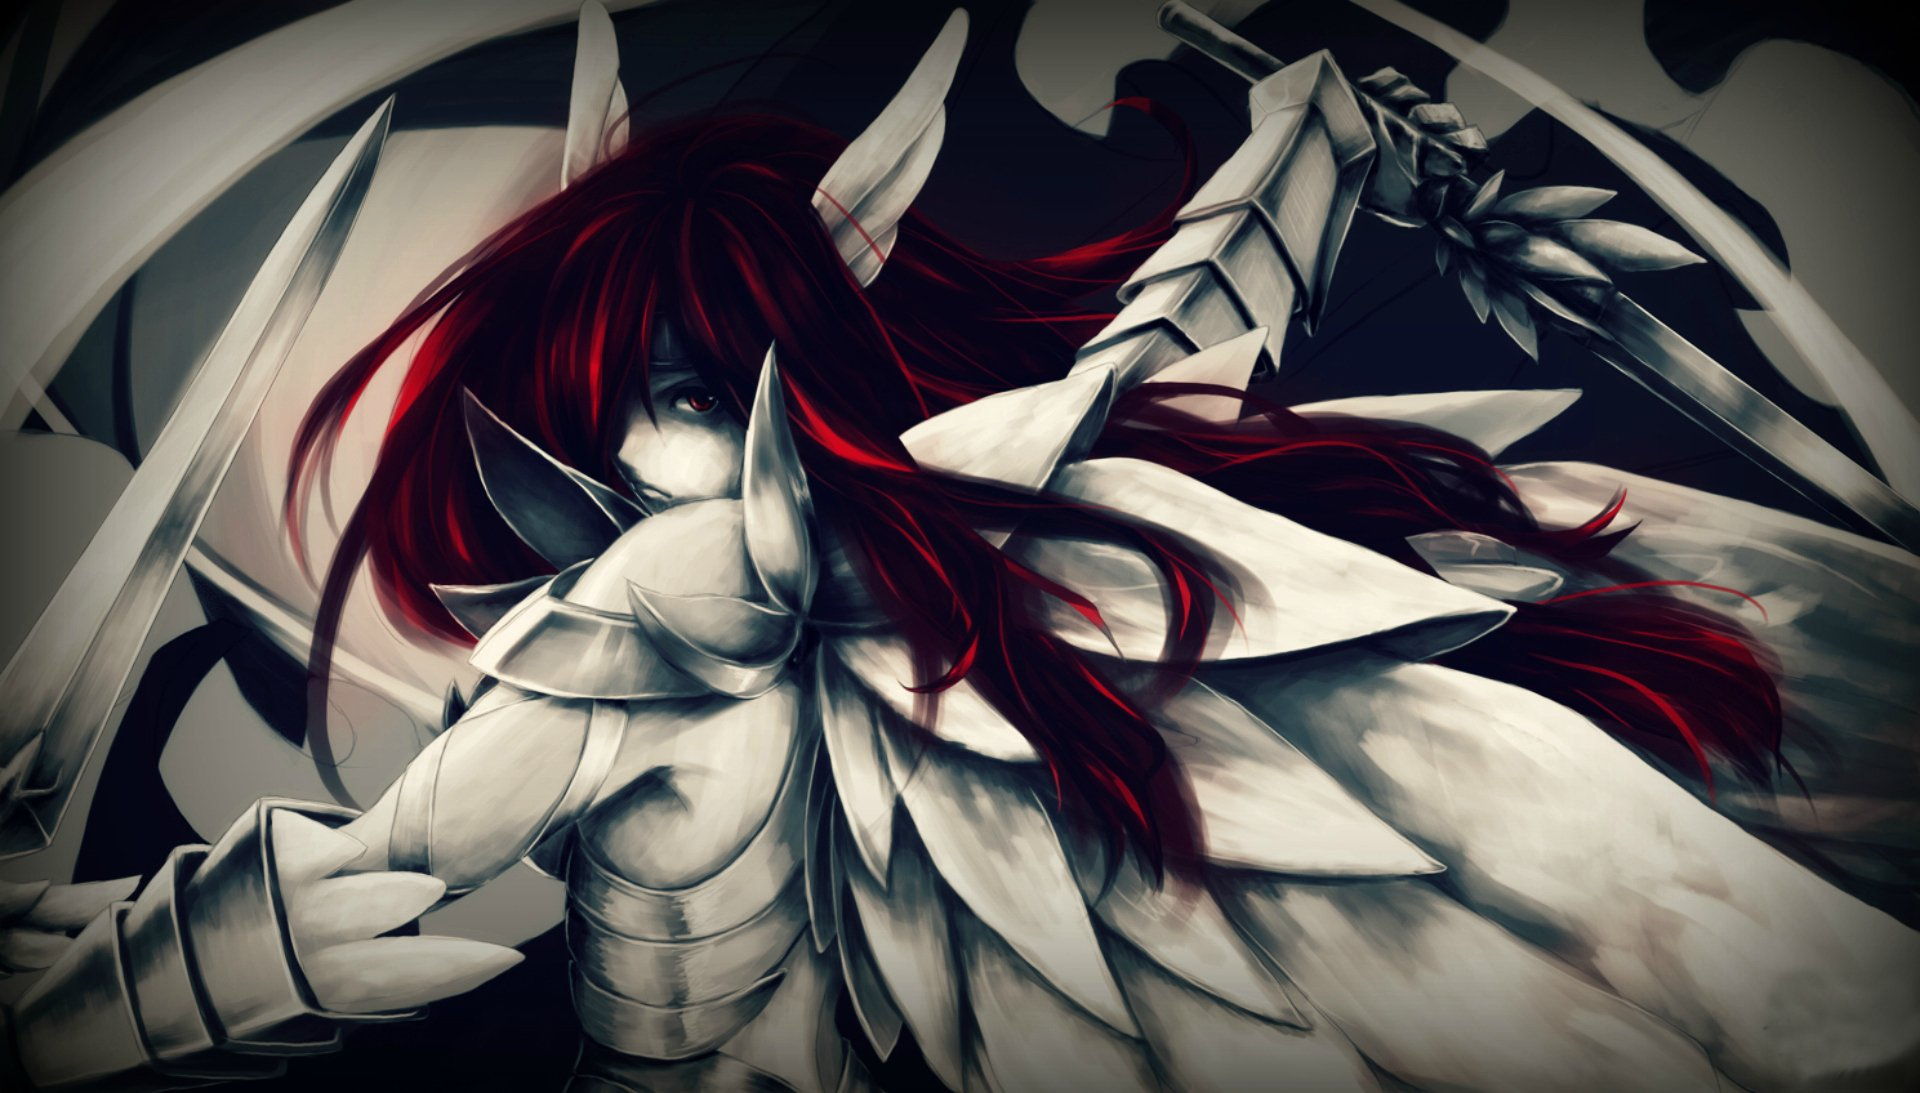 Anime - Fairy Tail  Erza Scarlet Armor Red Hair Long Hair Sword Wallpaper